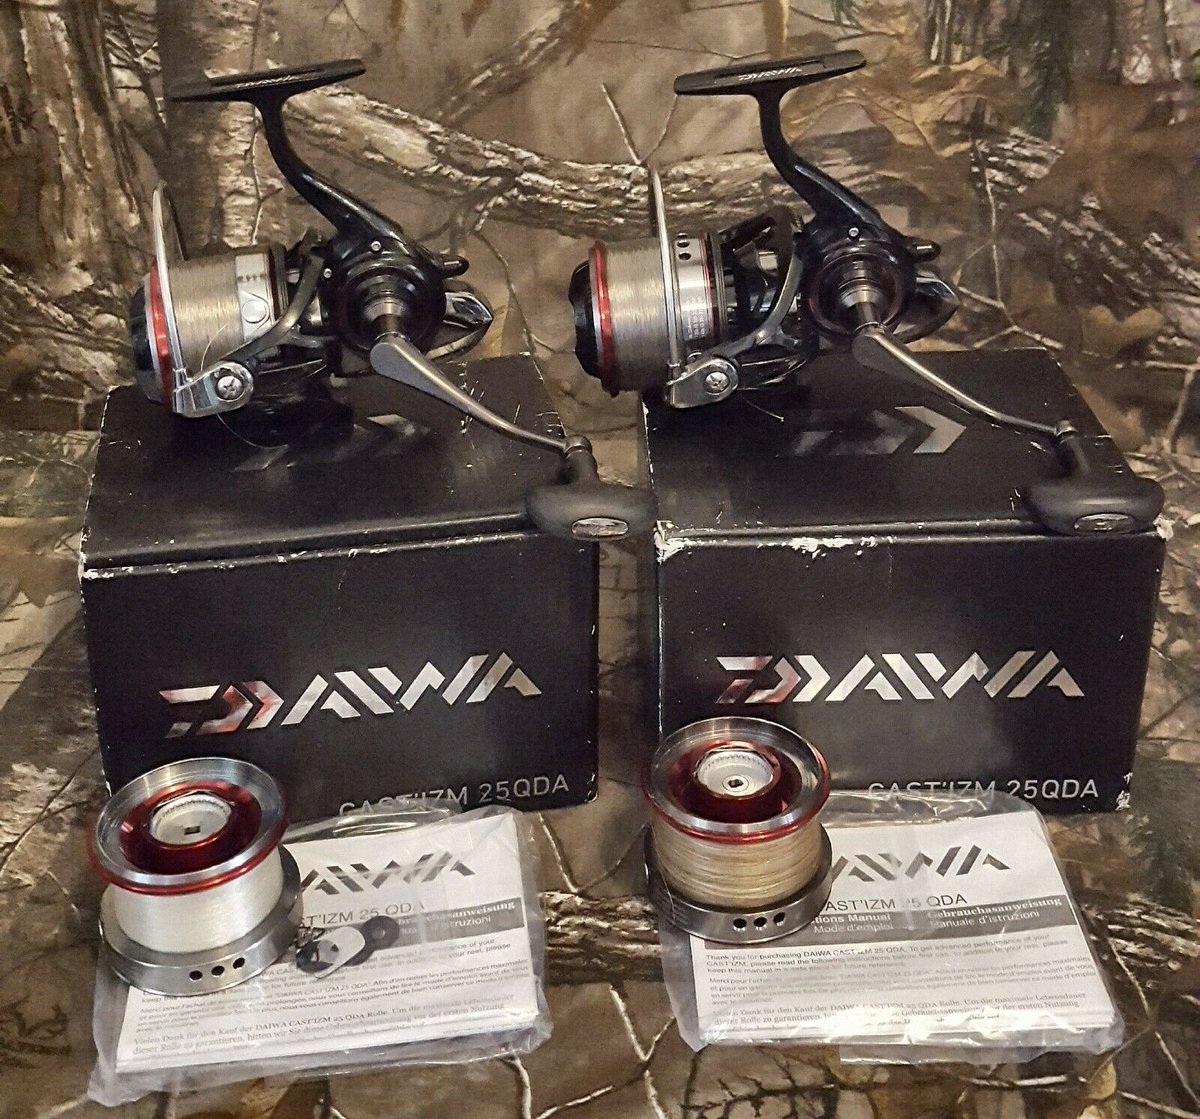 Ad - Daiwa Cast'izm 25QDA x2 On eBay here -->> https://t.co/bDxmxIthaE  #carpfishing #fishingt